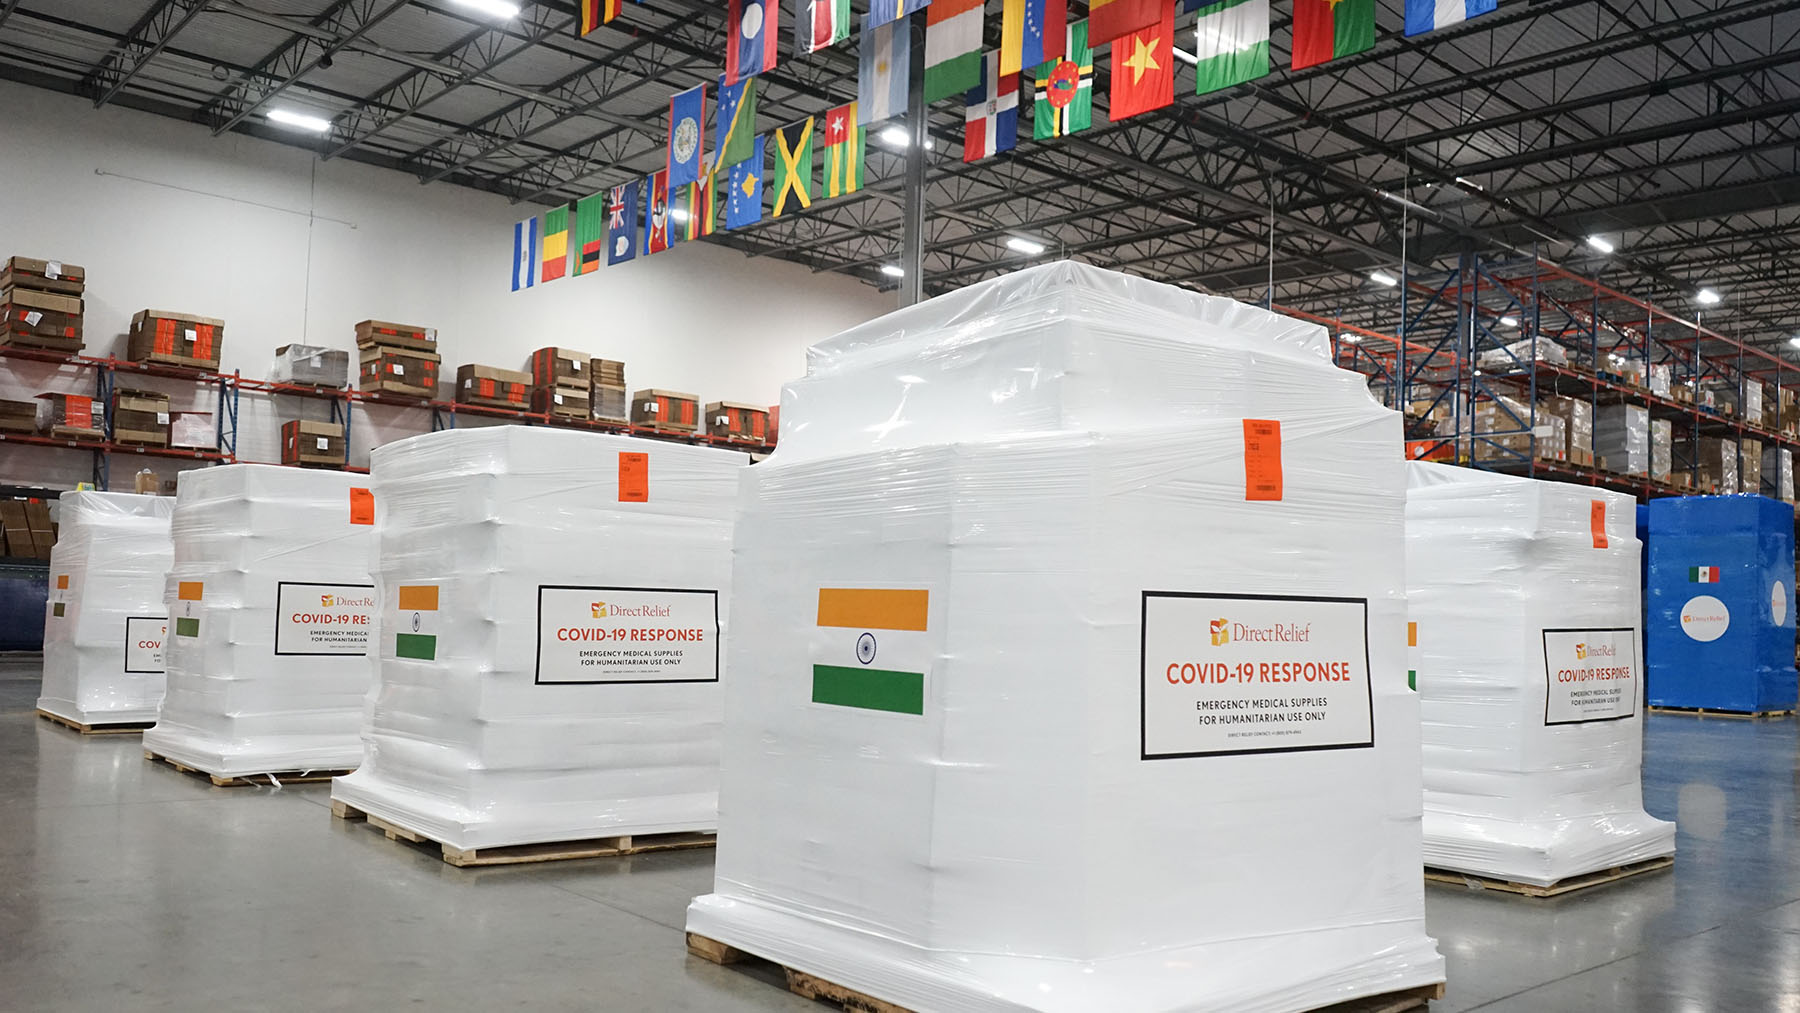 Medical aid is staged on April 30, 2021, for departure to India, where Covid-19 cases have spiked during recent weeks. Direct Relief is supporting hospitals in the country with requested aid. (Lara Cooper/Direct Relief)